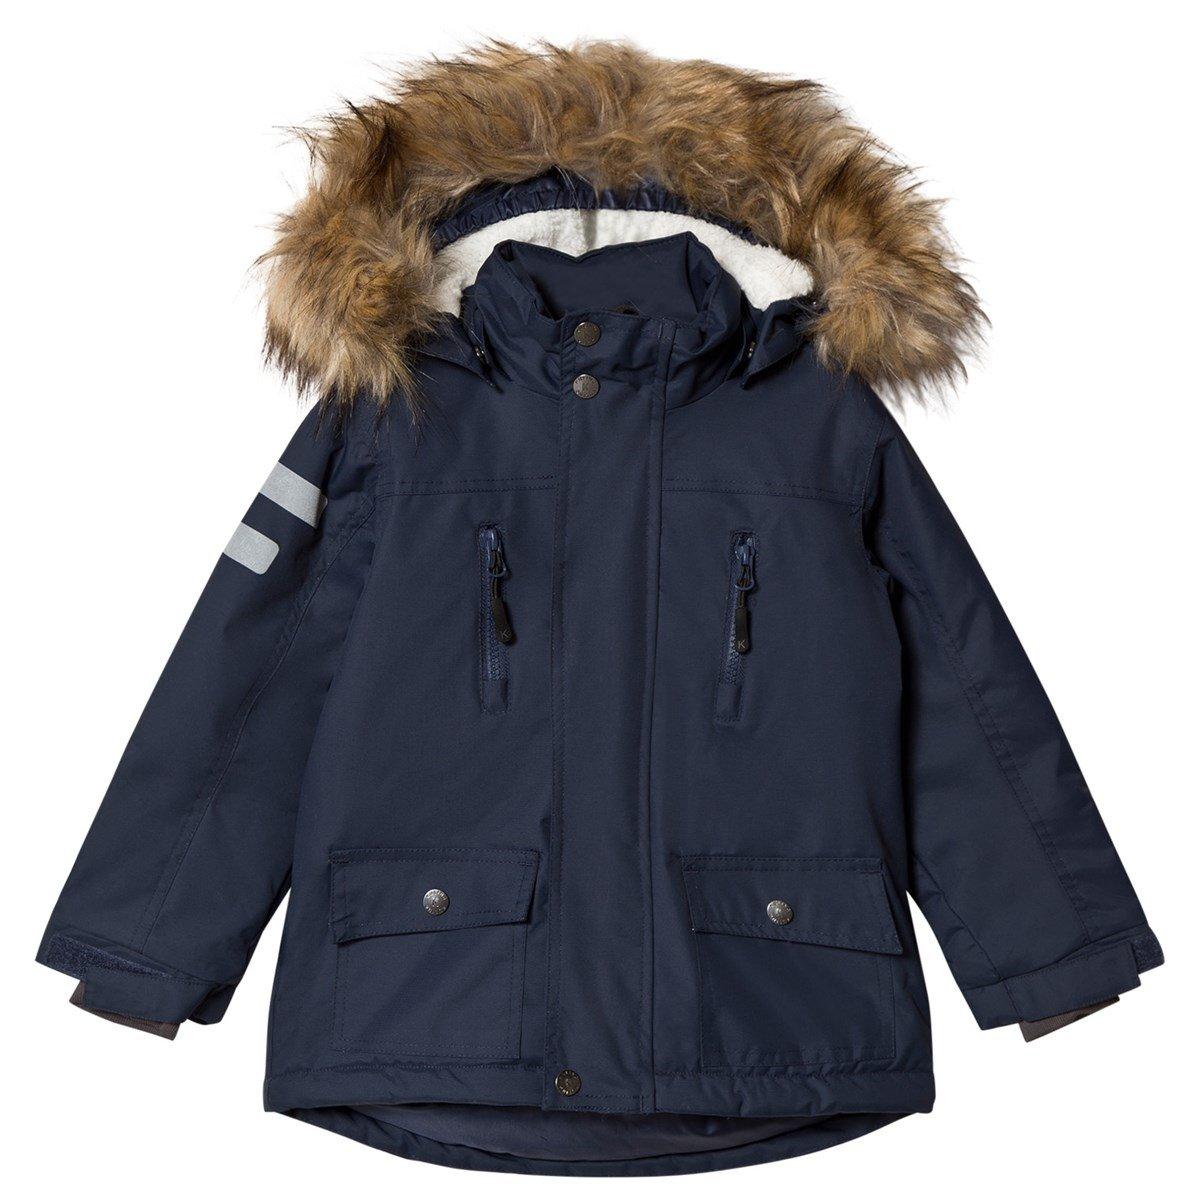 Kuling Classic Navy Val Thorens Outdoor Winter Parker